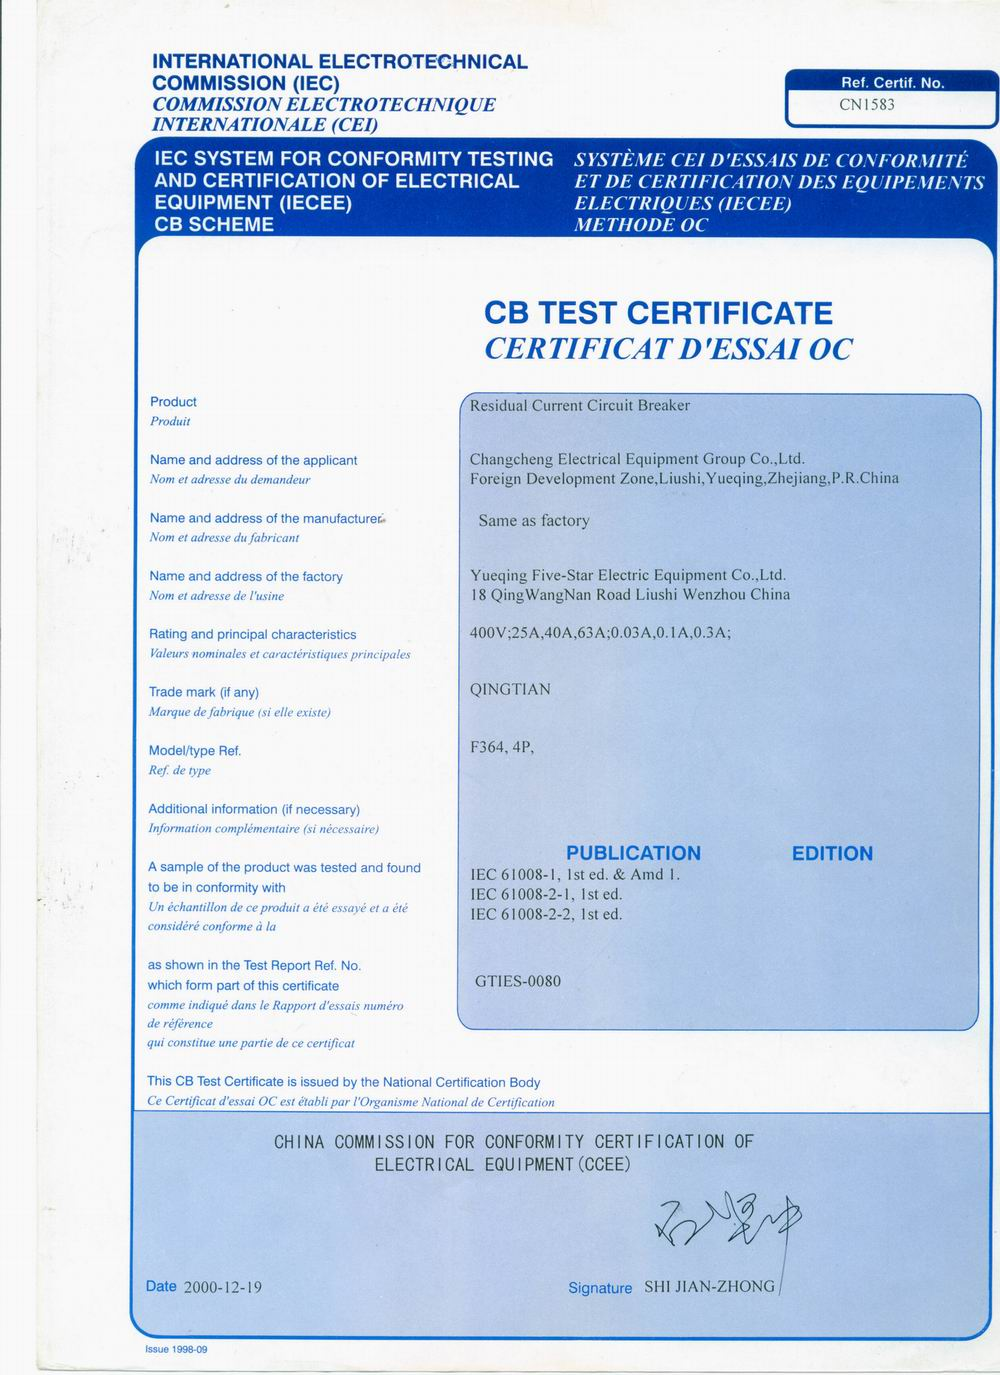 CB Certificates for F360 RCCB